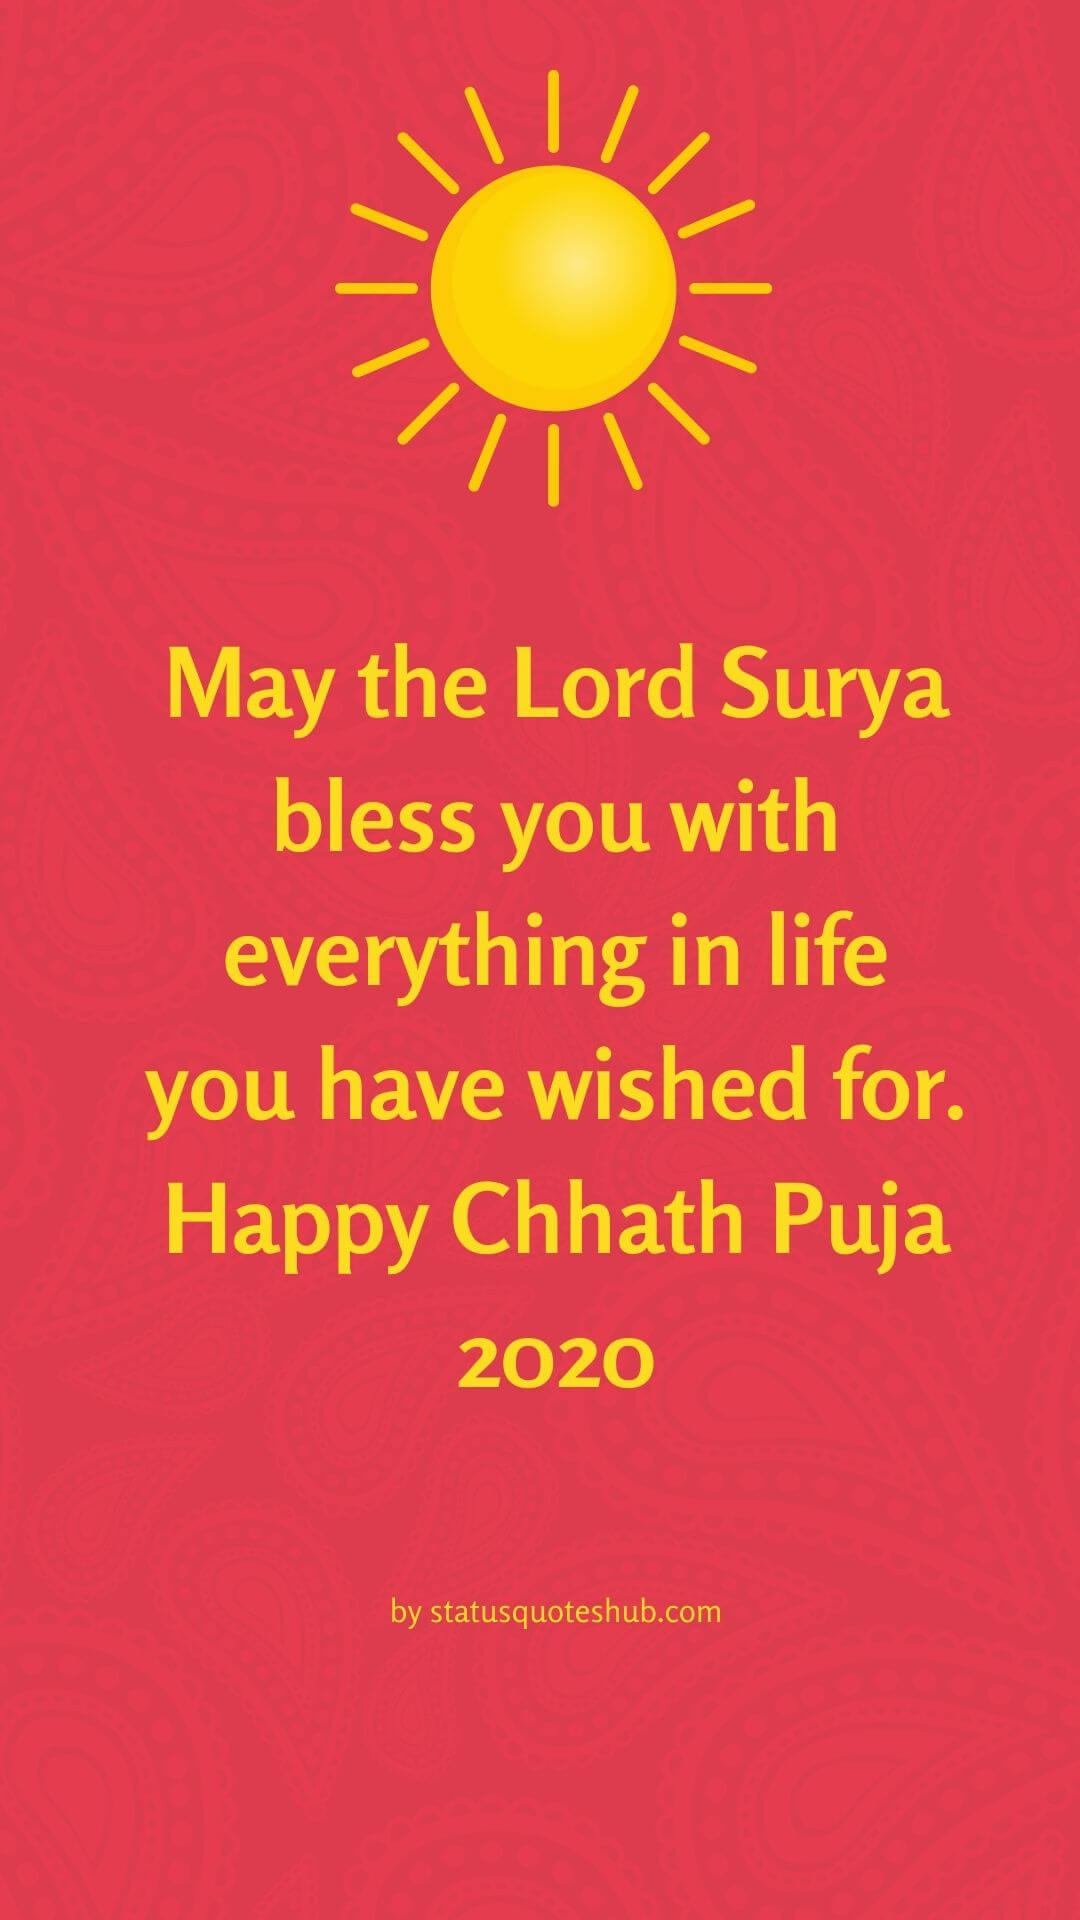 Chhath puja wishes and greetings